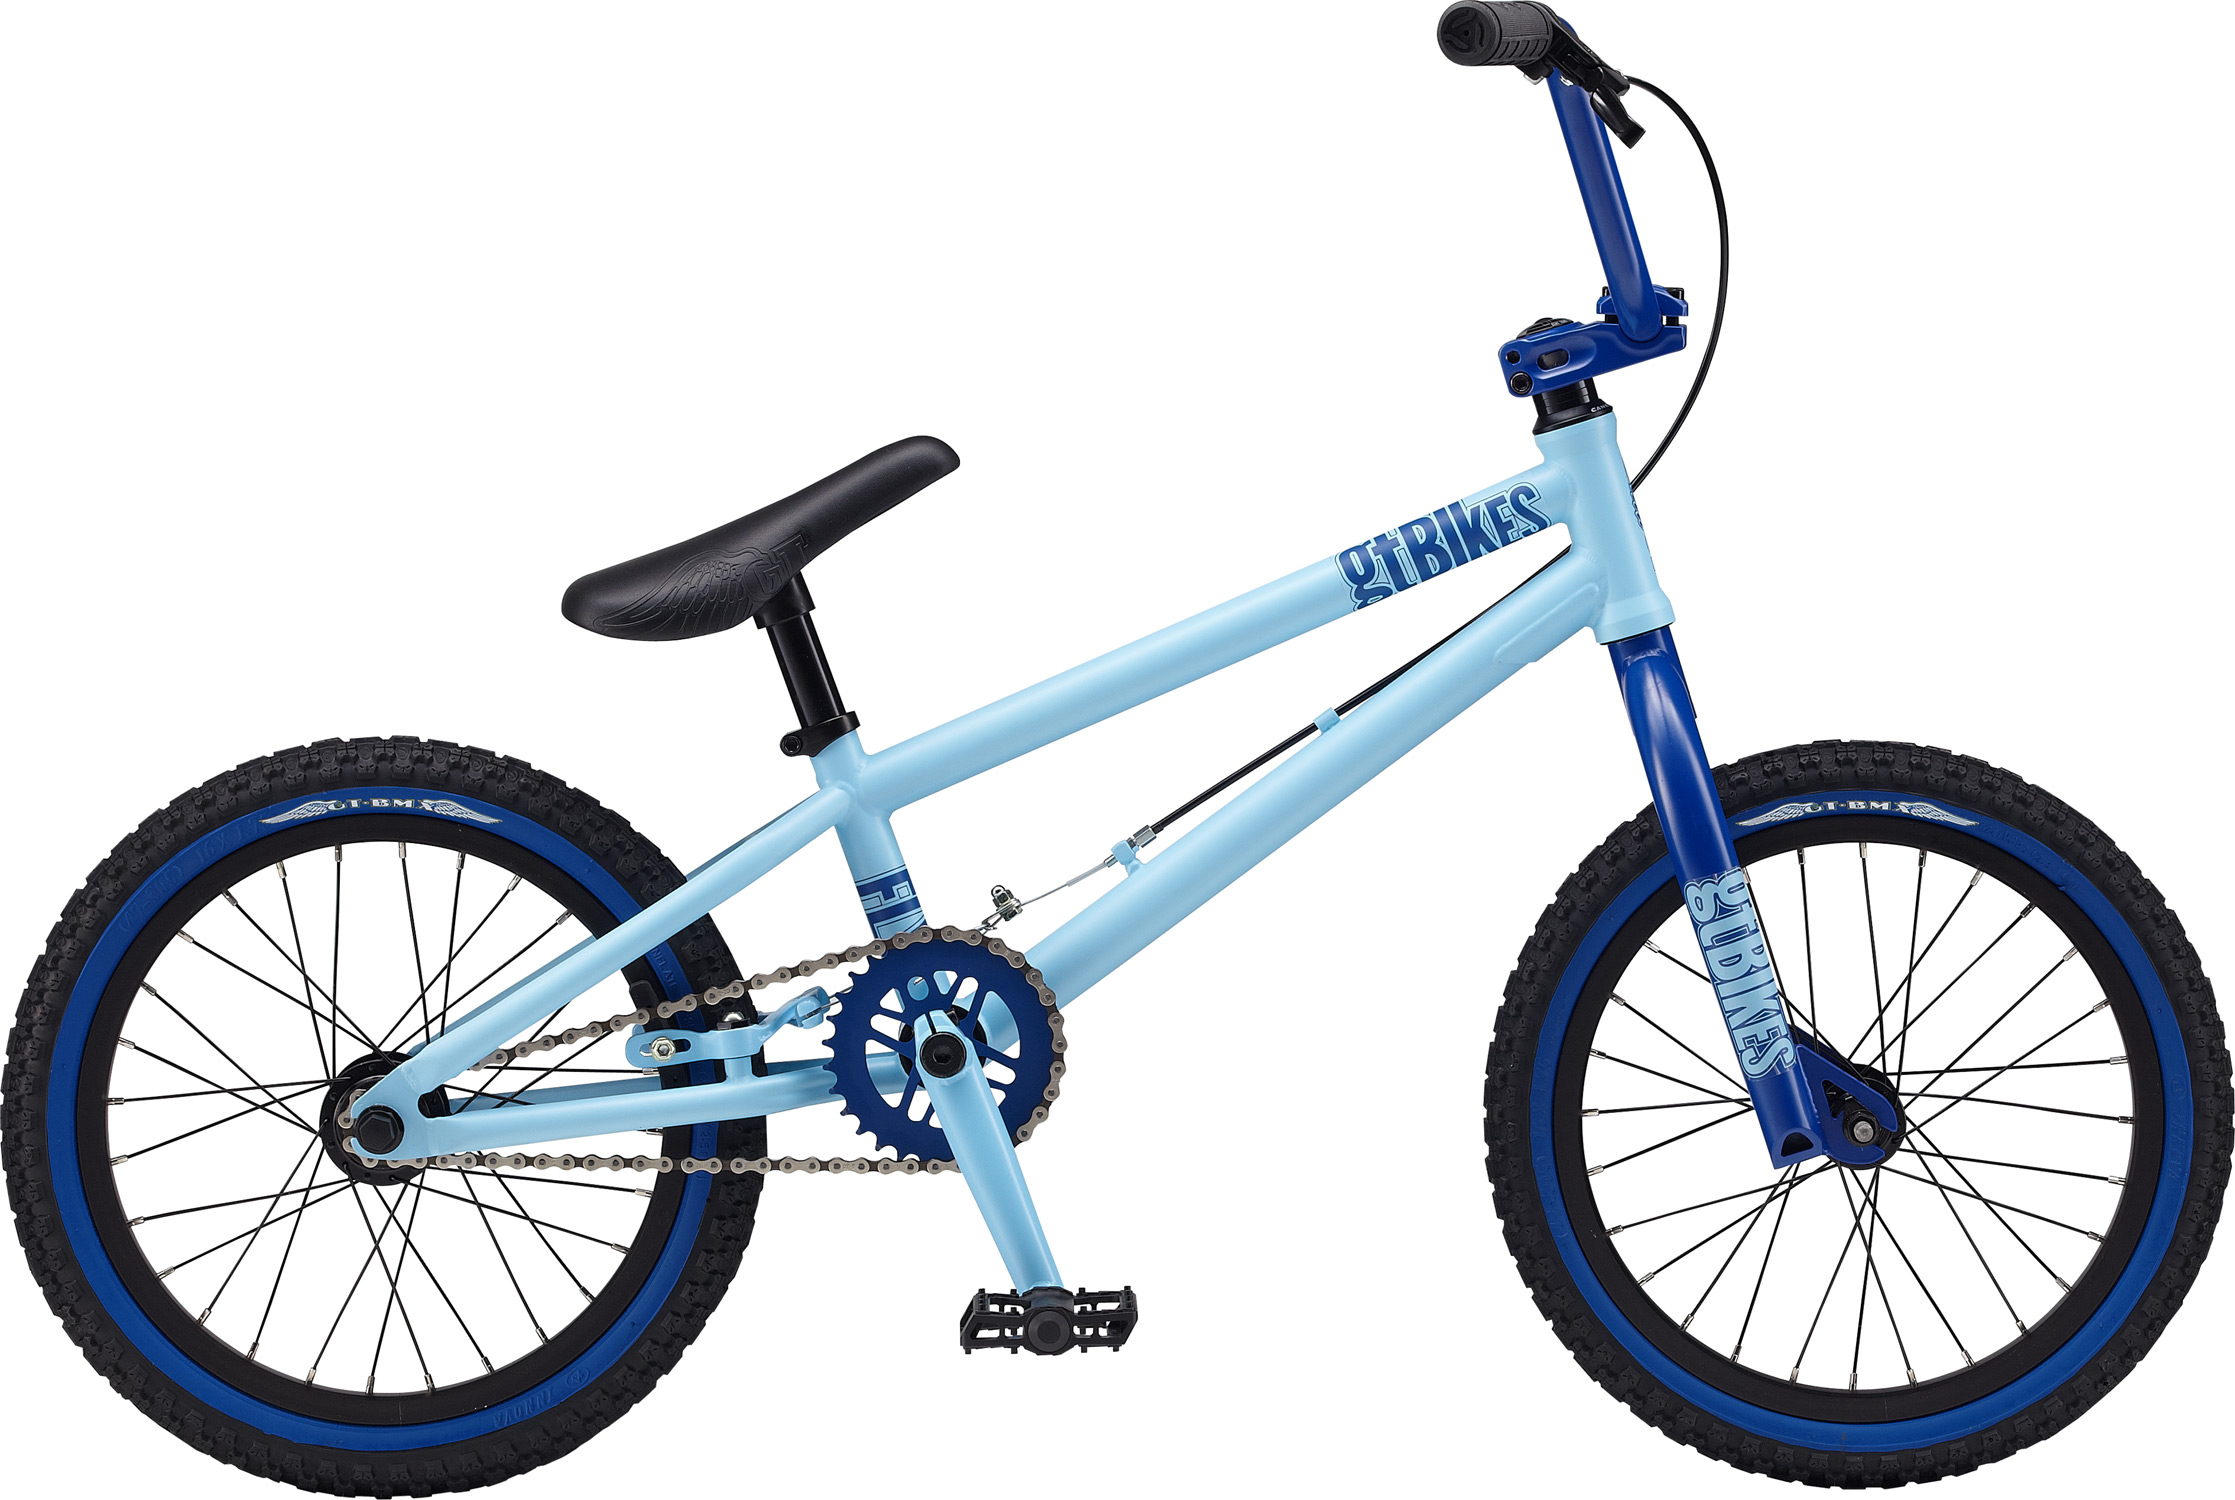 "BMX Key Features of the GT Fly BMX Bike 16"": Frame: NEW Straight Gauge, Hi-Ten, Dumped C/S, TripleTriangle™, 14mm Dropouts,S/S Mounted Brake Mounts Front Suspension: GT, Full Hi-Ten, 31.8-28.6 Taper, 3/8, 1 1/8"" Crankset: GT Cro-Mo 3 Pcs, 8T, 140mm 30T Wheels/Hubs: GT Al Cassette Loose Ball 3/8""F, 3/8""R 28F, 28R Hole Brakes: Tektro FX340R - $249.99"